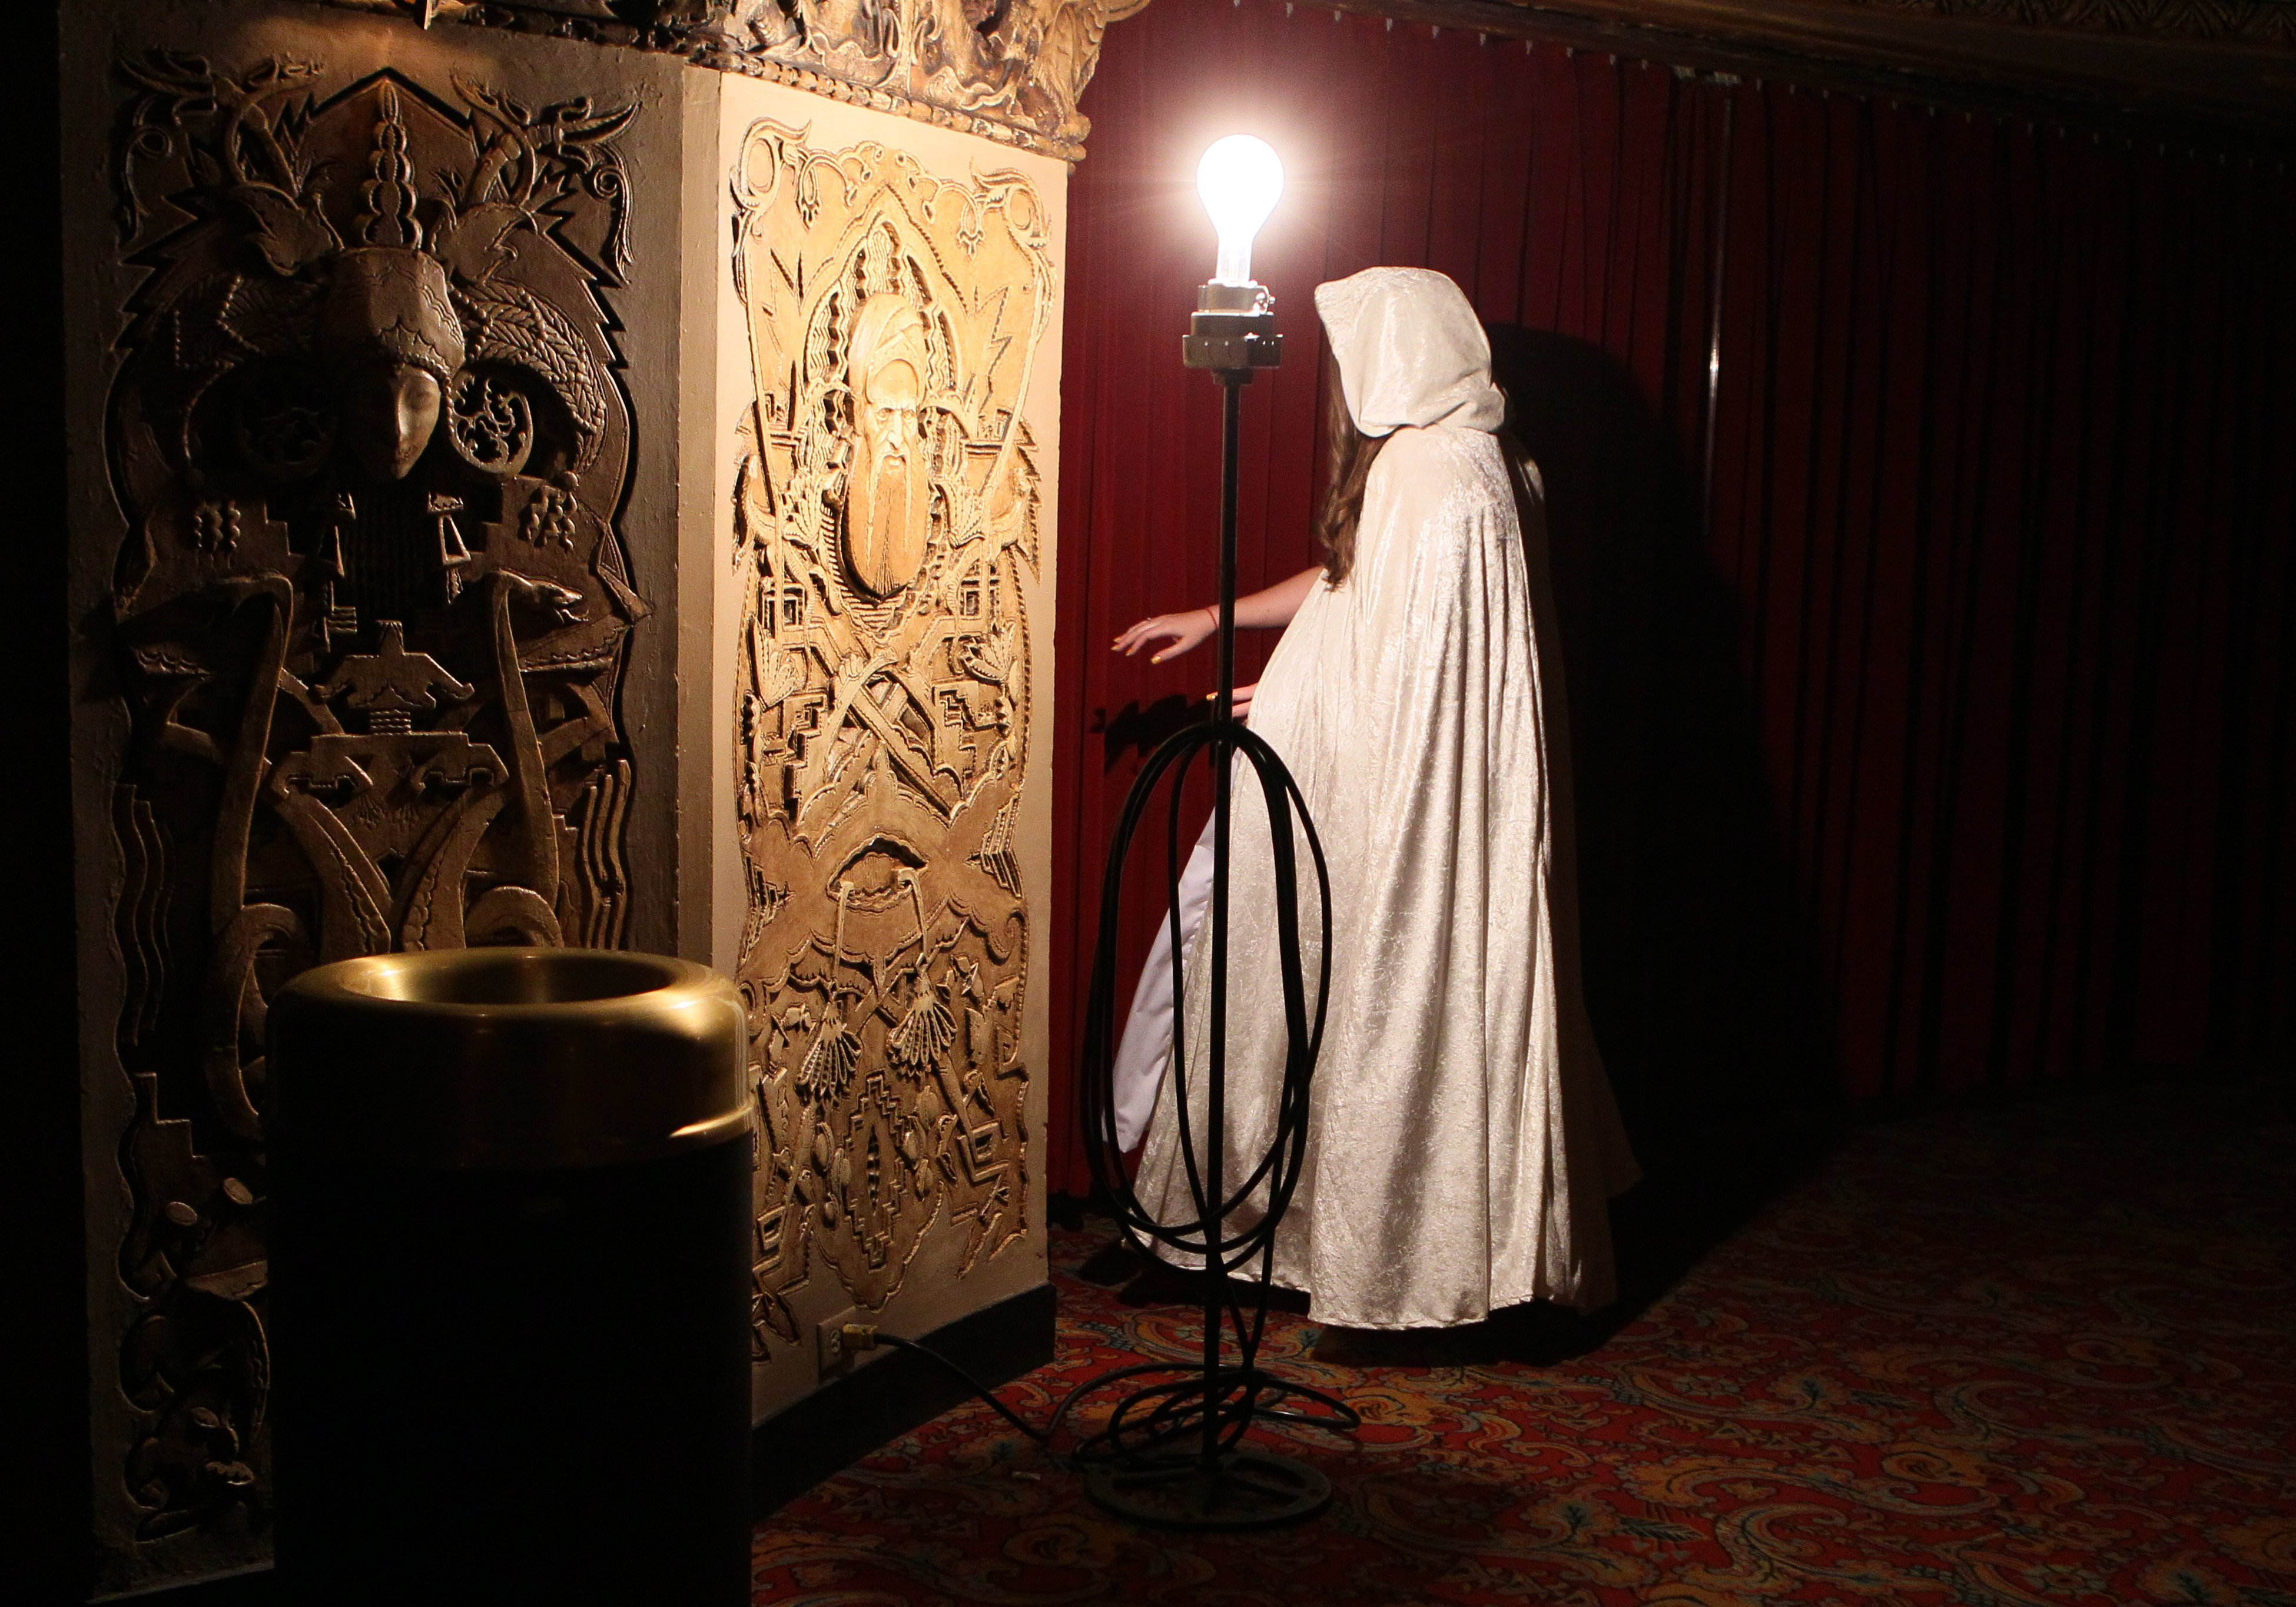 Ghost hunting heres where you may find some spirits of st louis heres where you may find some spirits of st louis entertainment stltoday mozeypictures Choice Image